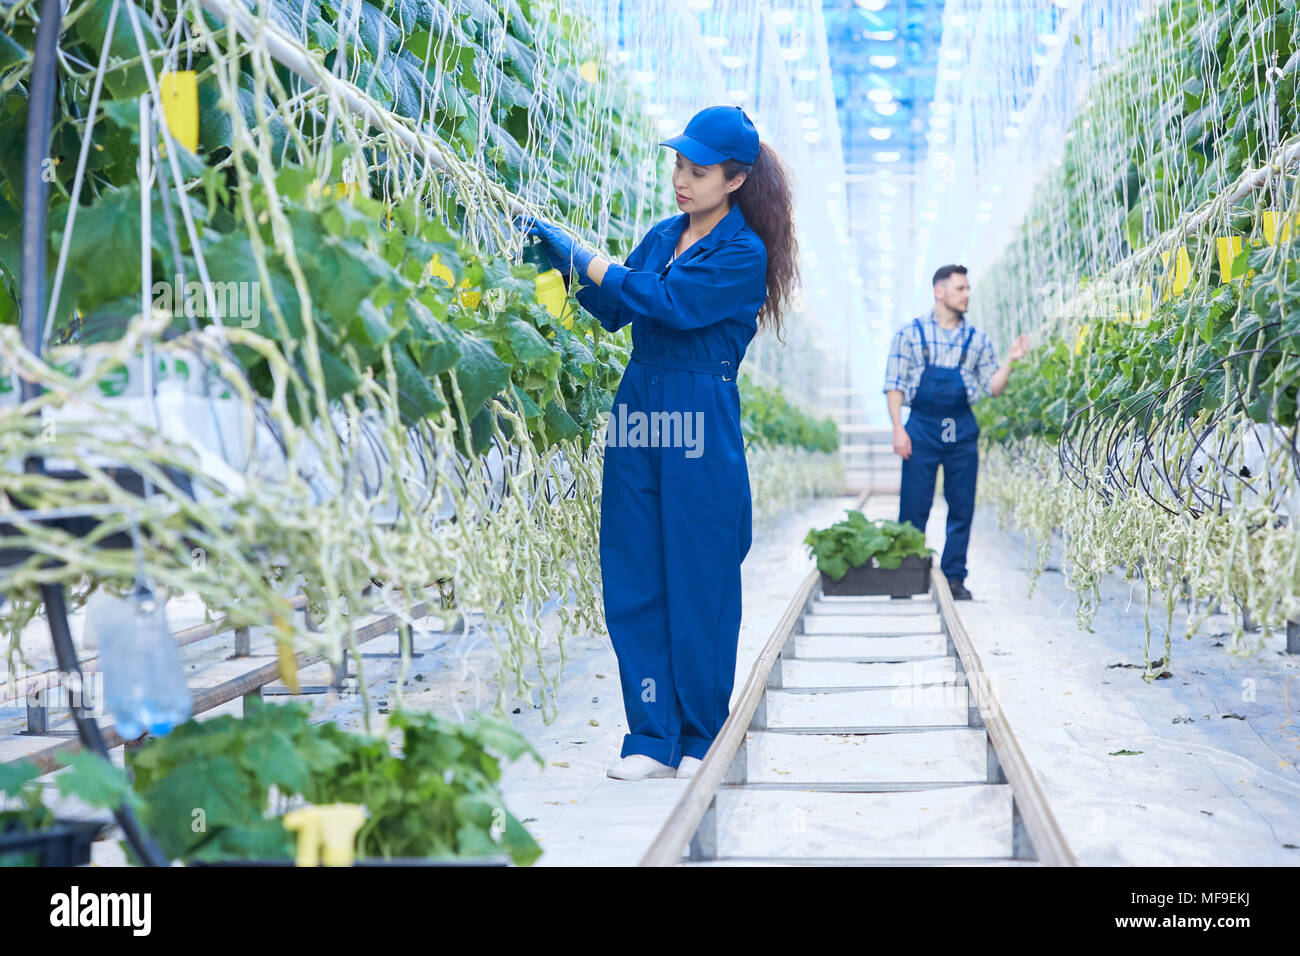 Two Workers on Plantation - Stock Image